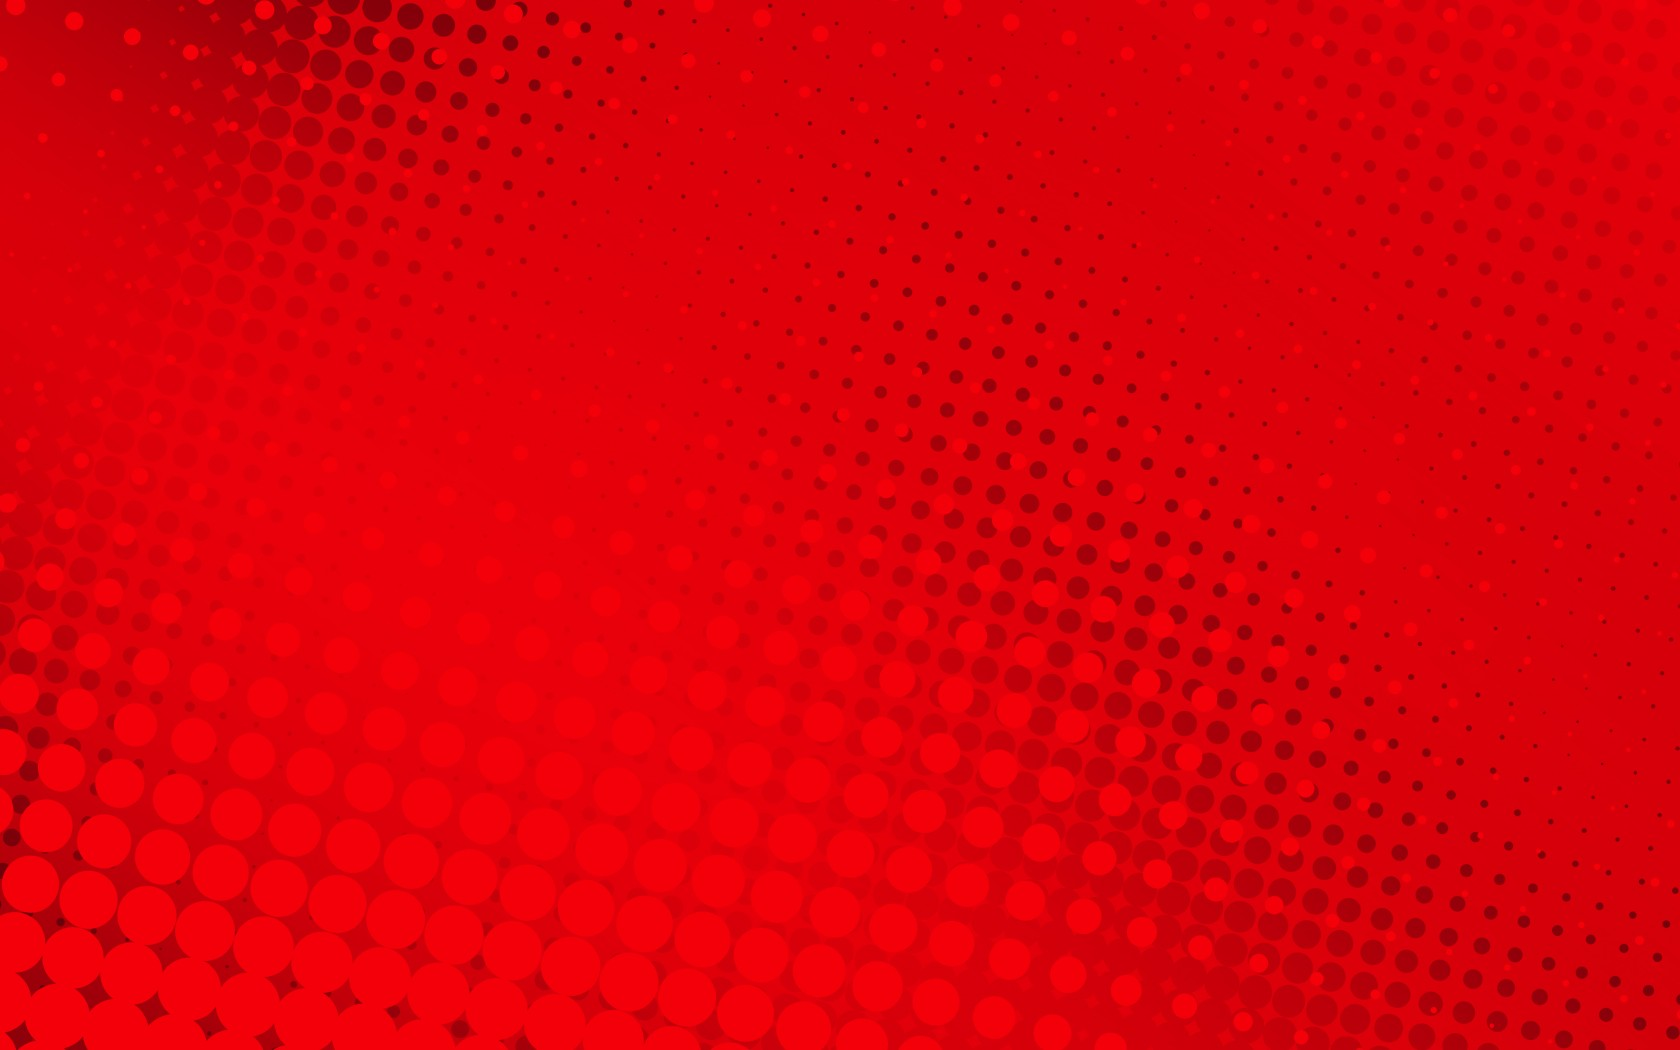 Cool 3d Ipad Wallpapers Red Halftone Background Hd Wallpapers Hd Backgrounds